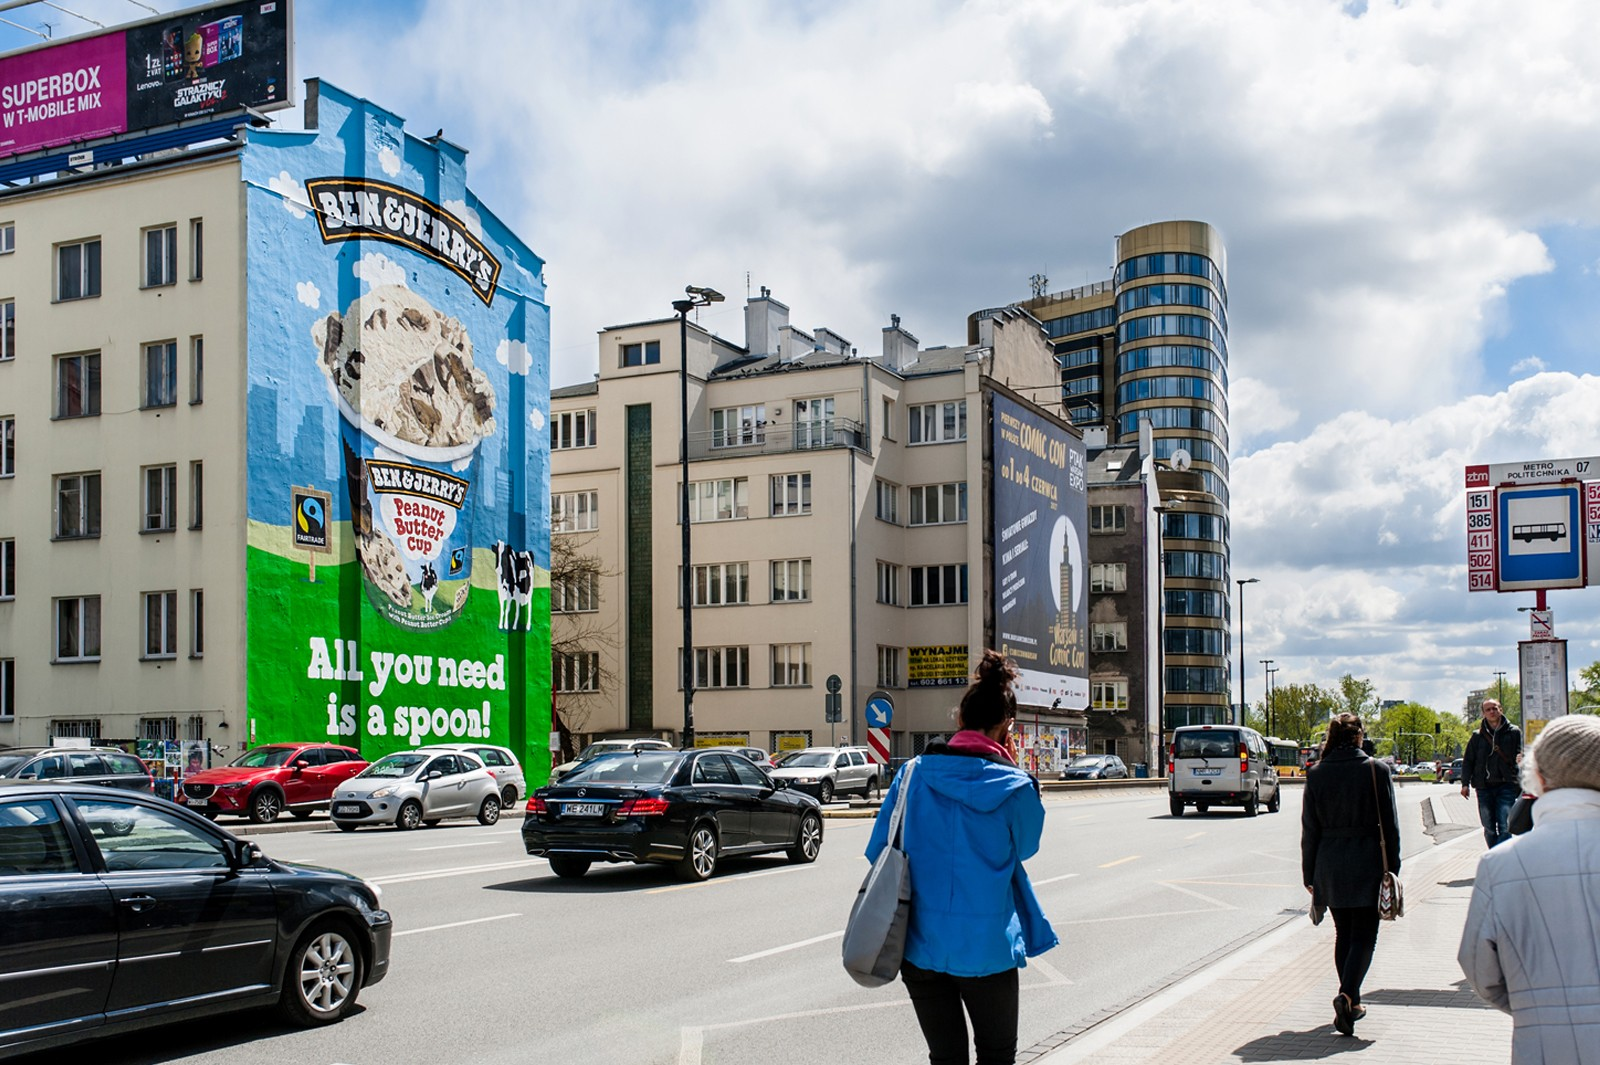 Mural commissioned by Ben&Jerry's on Jaworzynska street by Metro Politechnika station in Warsaw | Ben & Jerry's | Portfolio